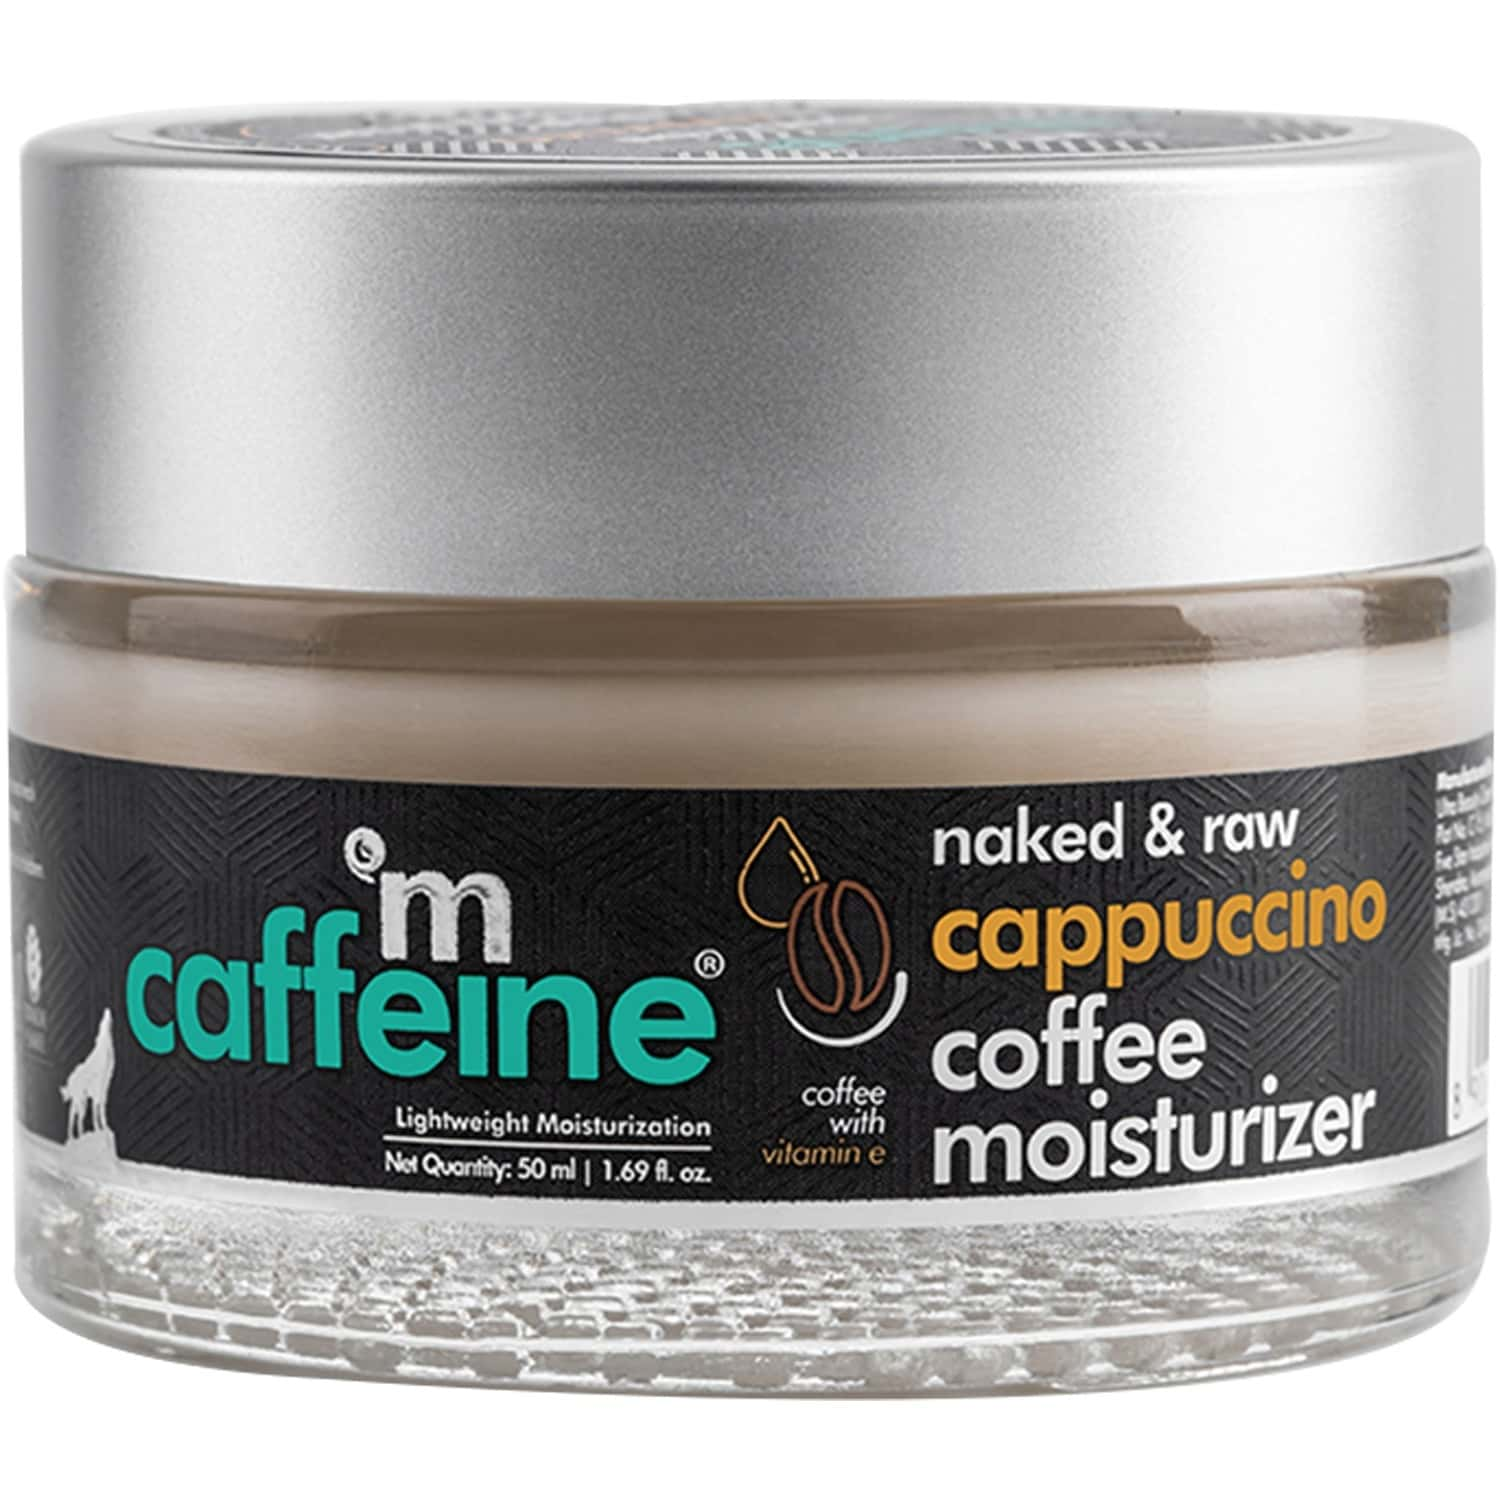 Mcaffeine Lightweight Cappuccino Coffee Moisturizer With Vitamin E & Almond Milk For Toning & Soothing (50ml)